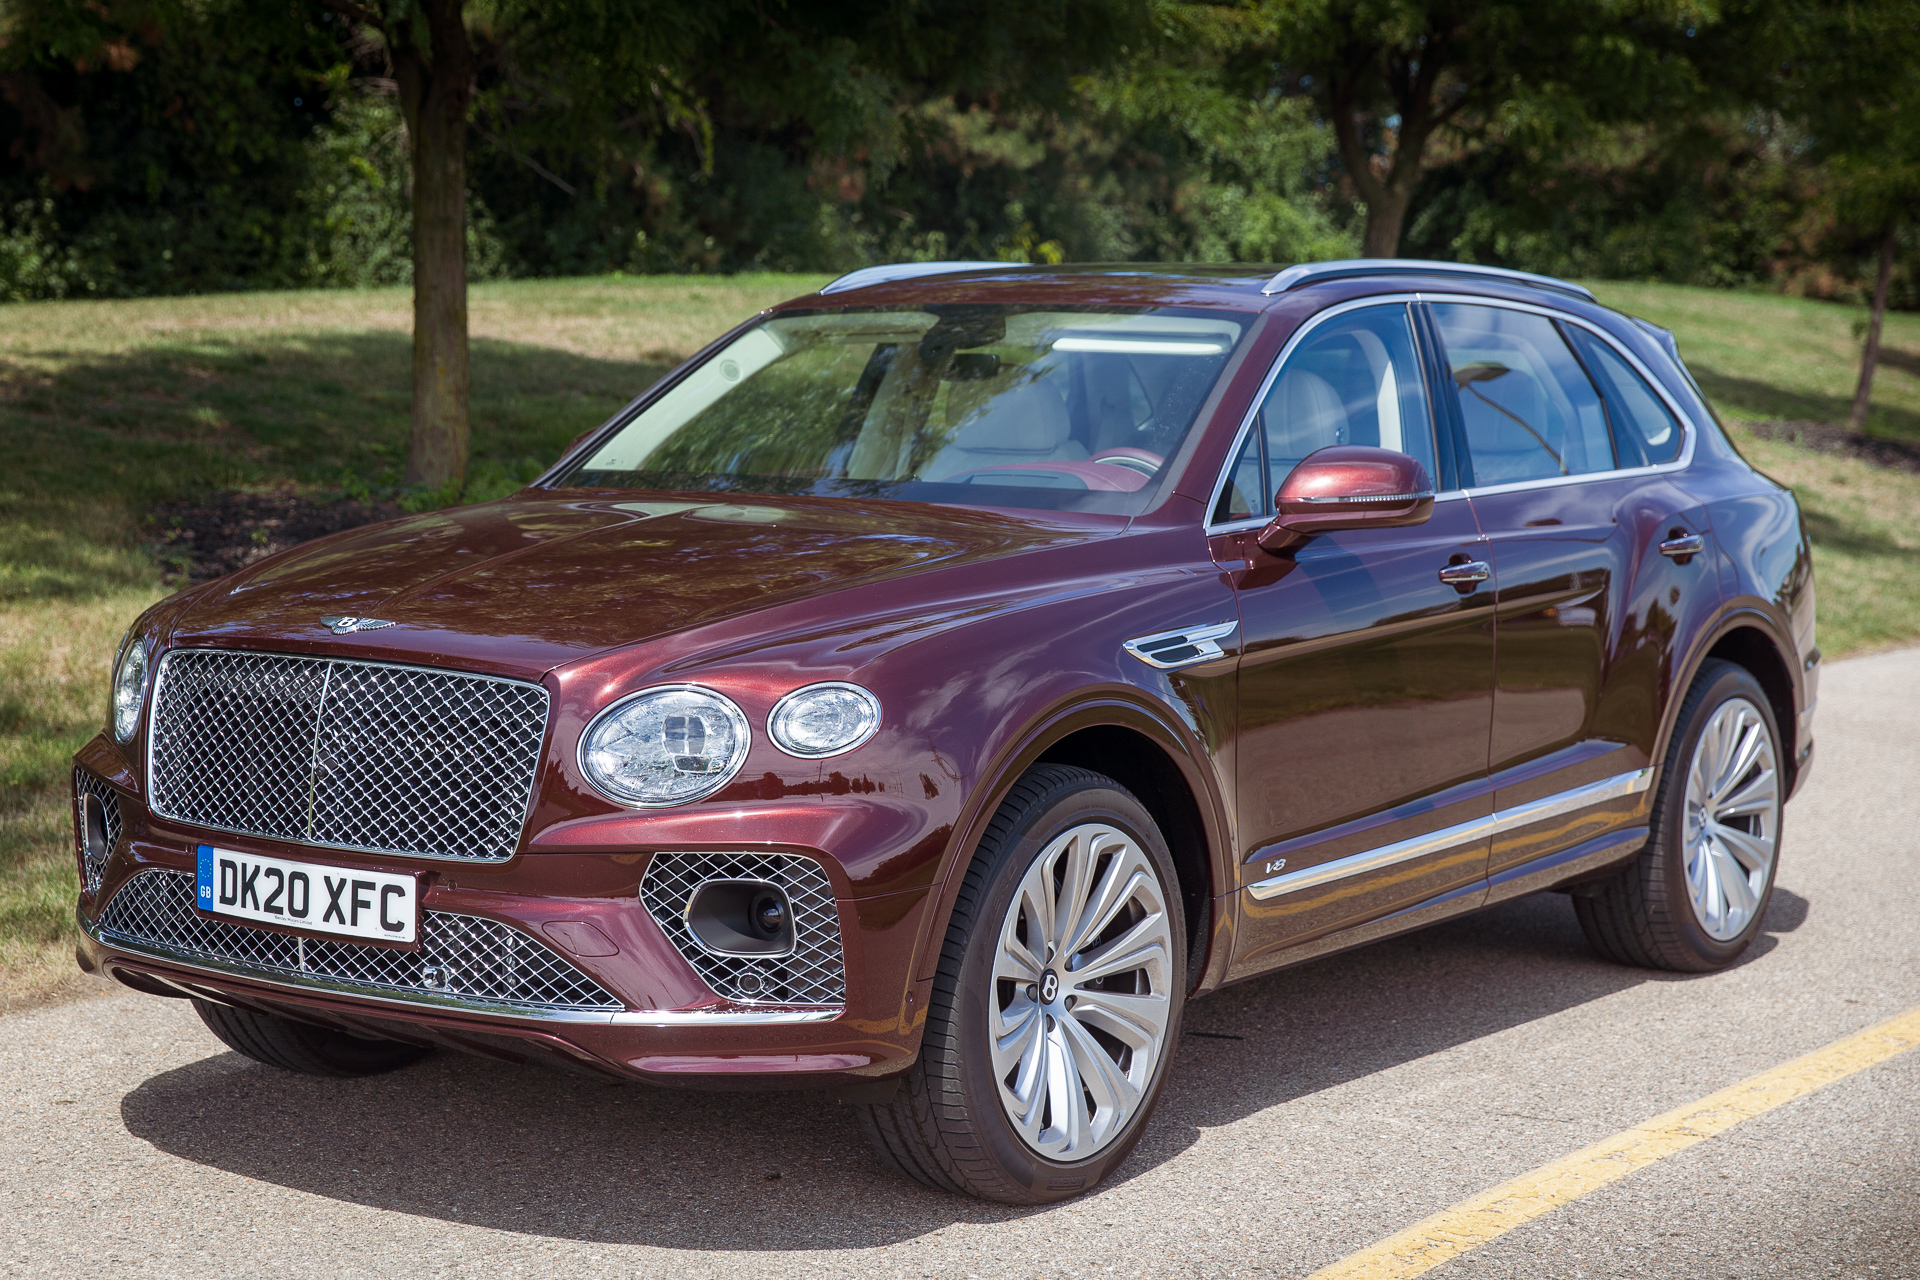 3 Thoughts After 24 Hours In The 177 000 Bentley Bentayga Techcrunch